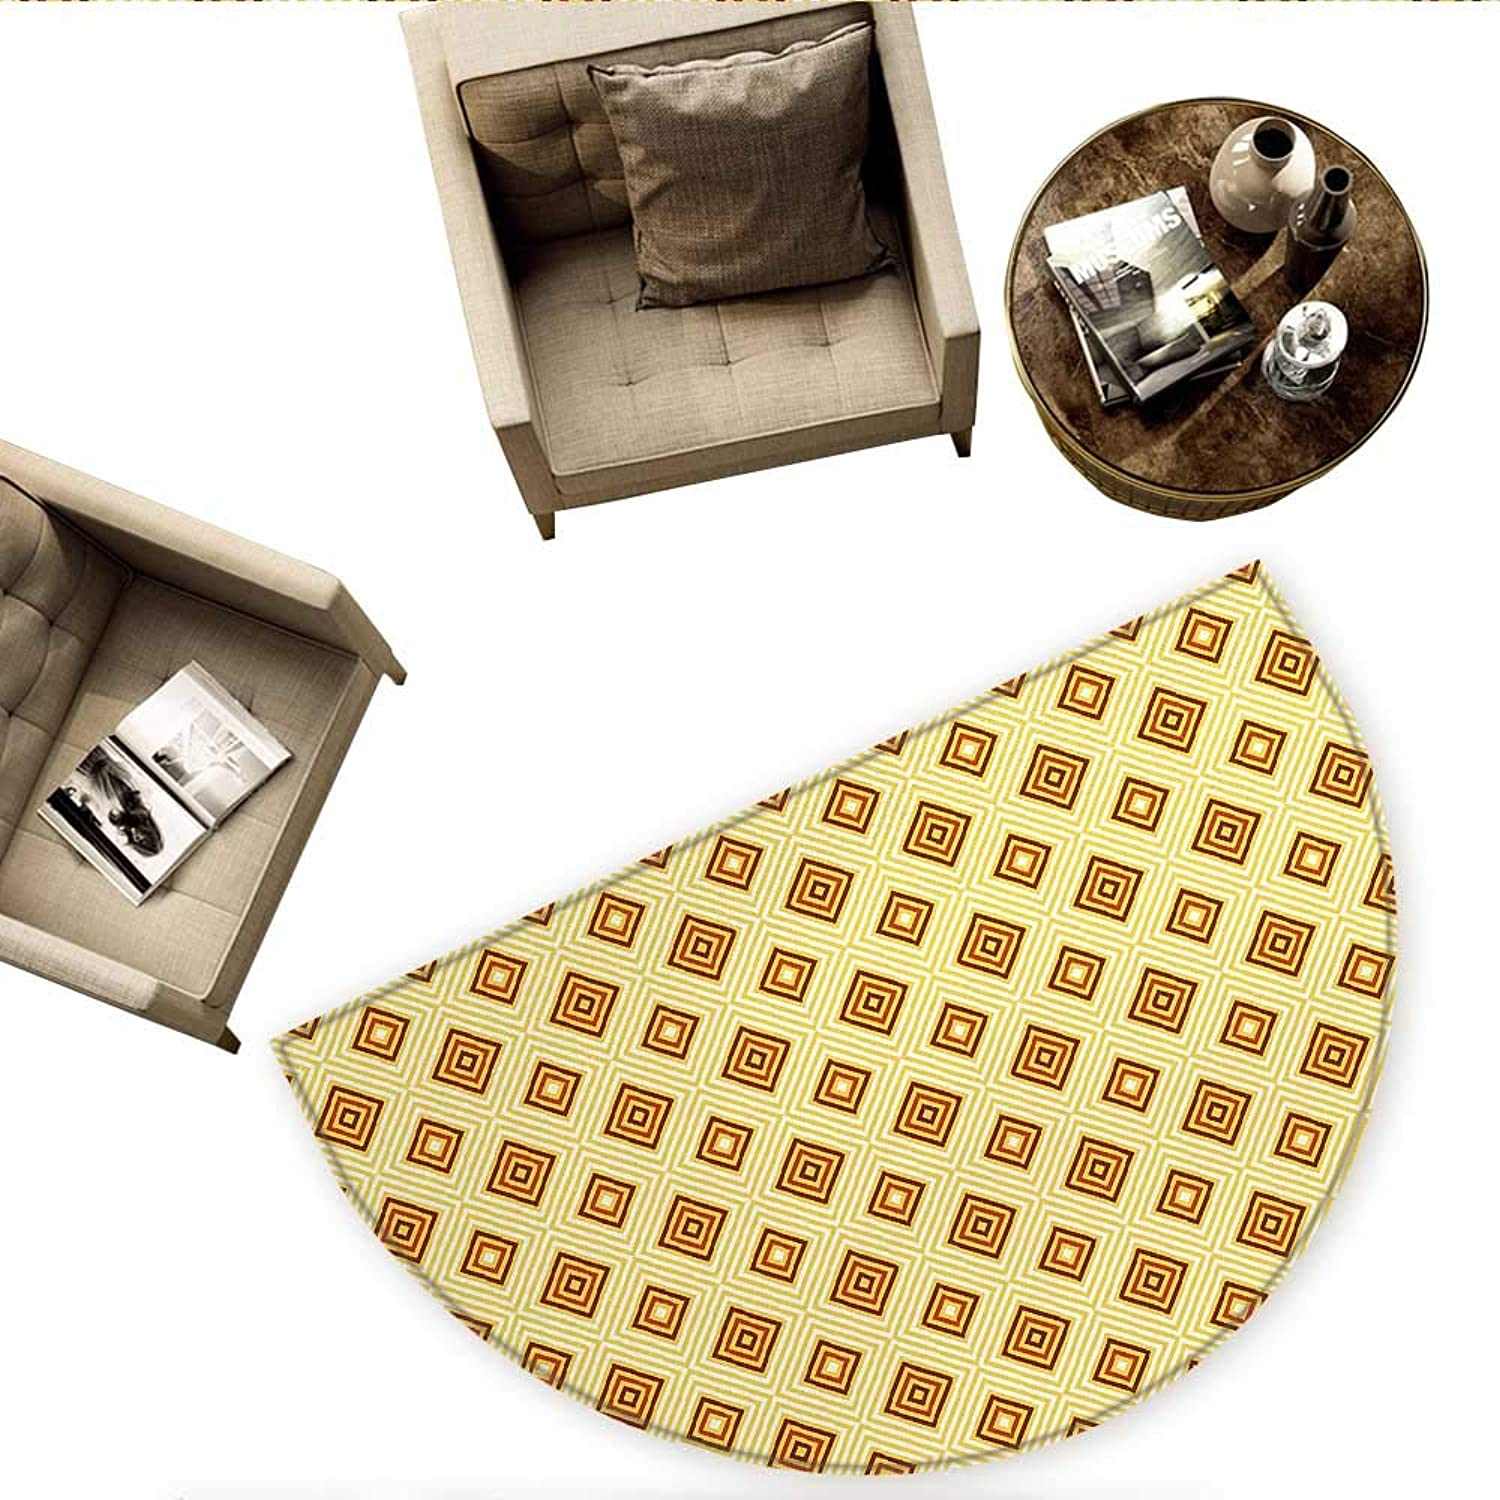 Retro Semicircle Doormat Old Fashioned Diamond Shapes with Inner Lines Sixties Style Rhombus Design Halfmoon doormats H 59  xD 88.6  Pale Yellow Amber